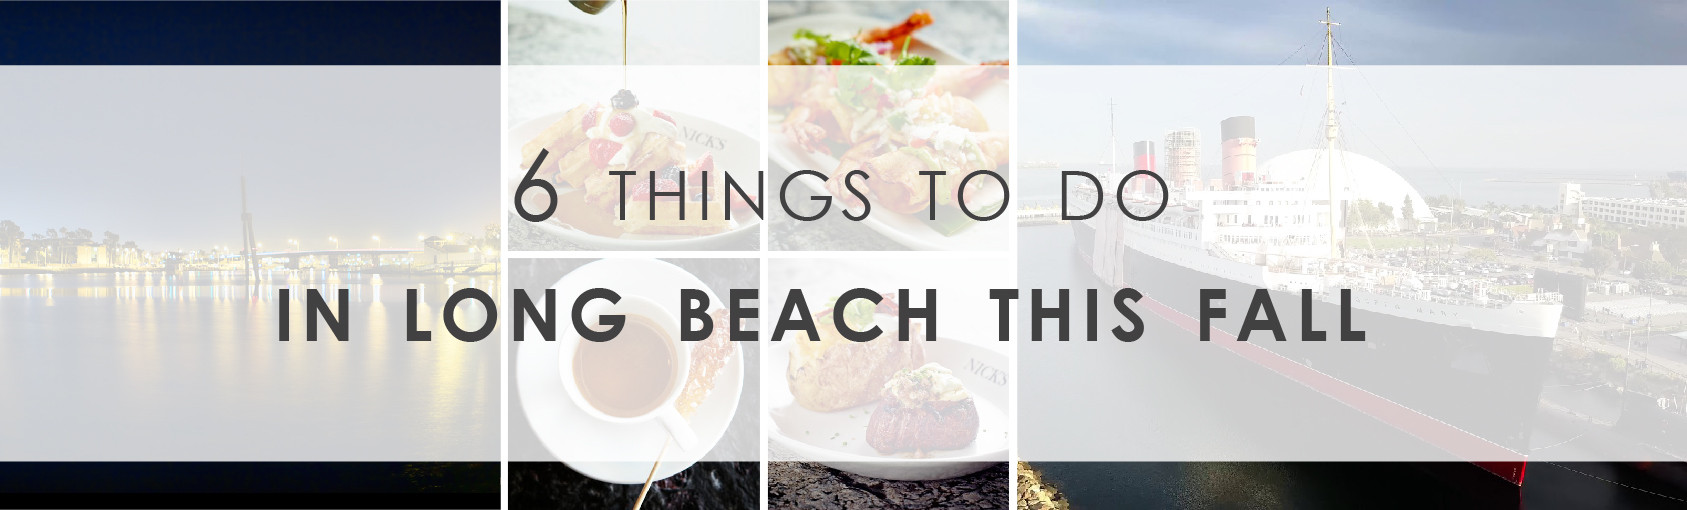 6 Things to Do in LB This Fall Banner